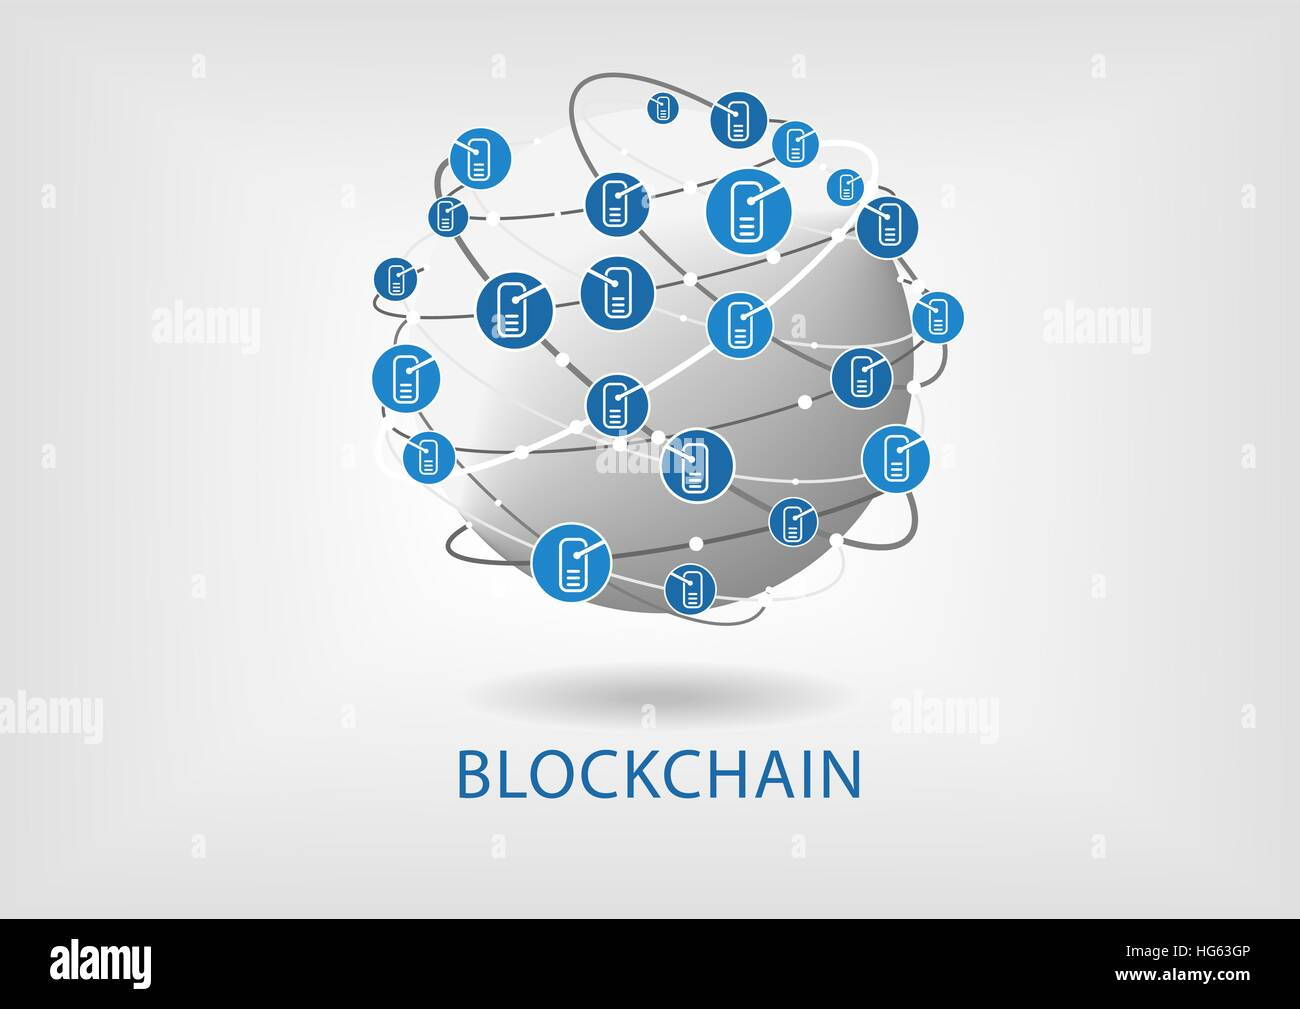 Blockchain vector illustration with connected globe on light grey background - Stock Image